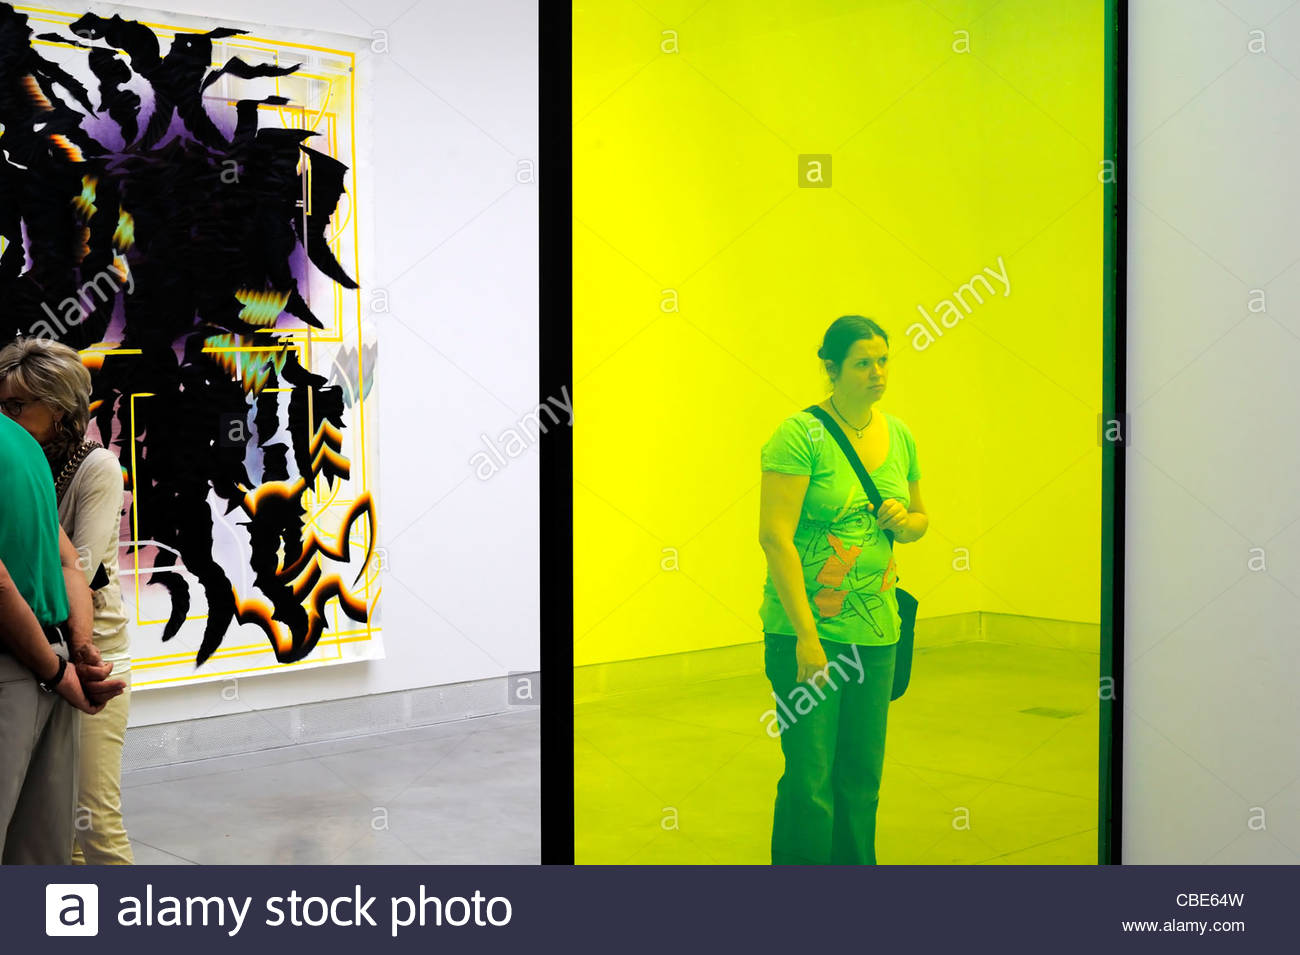 Venice Italy la Biennale female tourist looking at art object - Stock Image